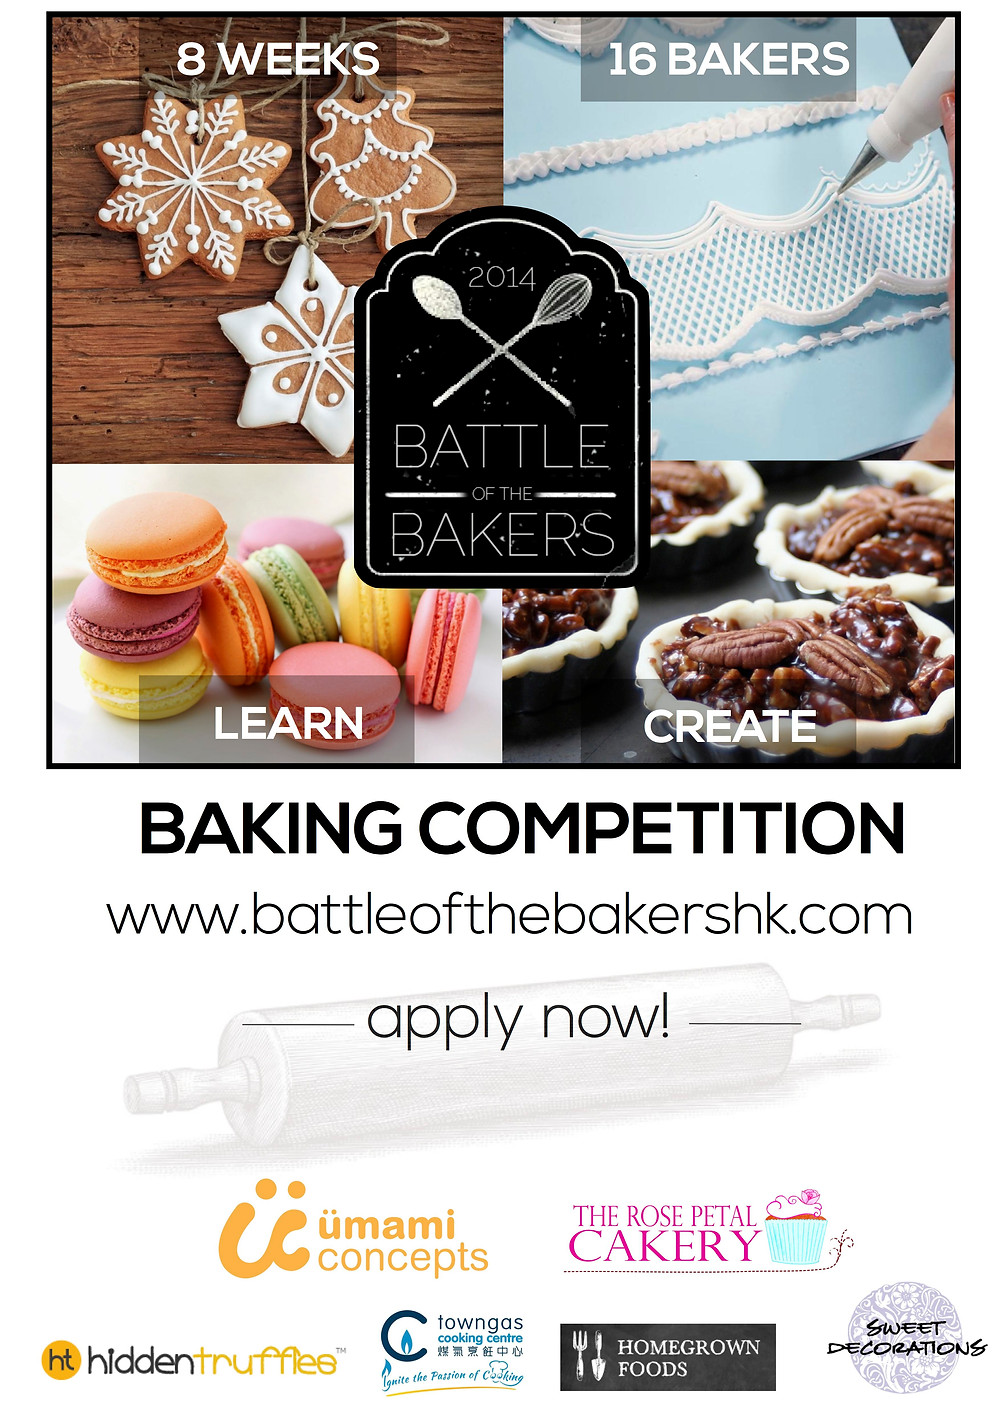 Battle of the Bakers Hong Kong Baking Competition with Rose Petal Cakery and Umami Concepts